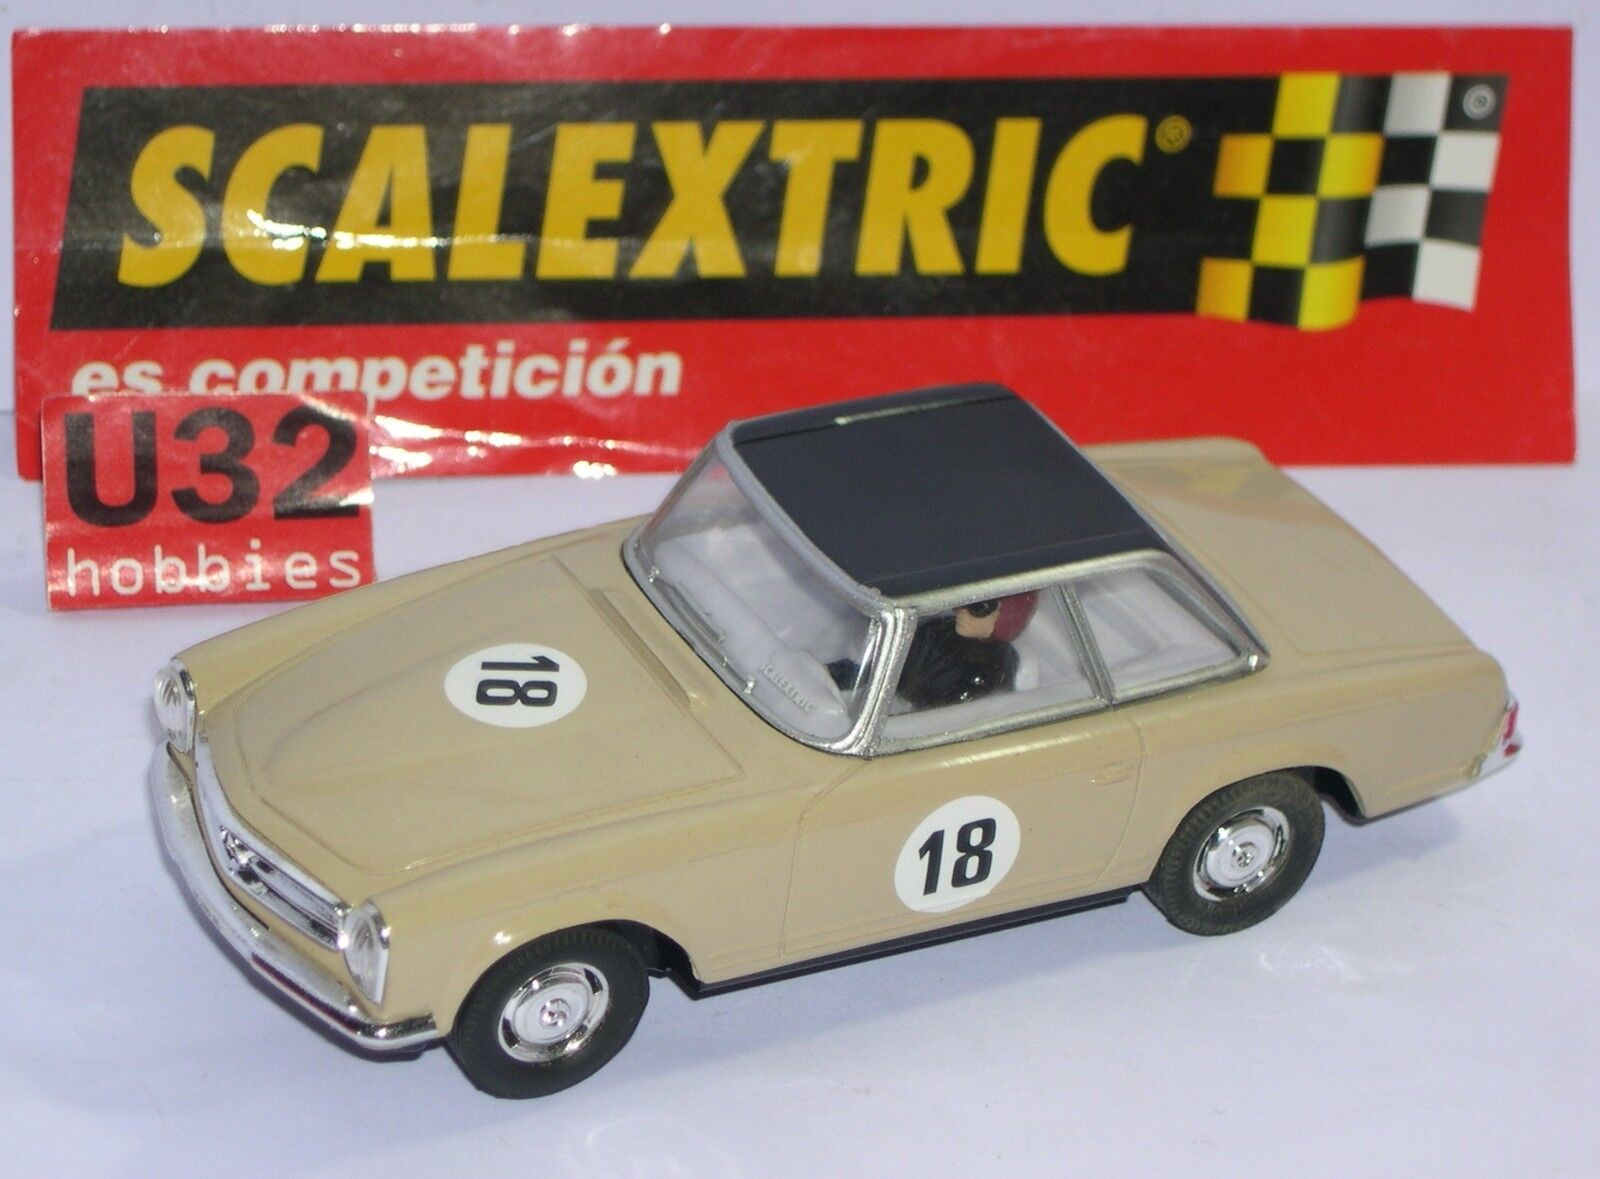 FN SCALEXTRIC SPAIN PLANET AUTOS MYTHISCHE MERCEDES 250 SL PAGODA  18 LTED.ED